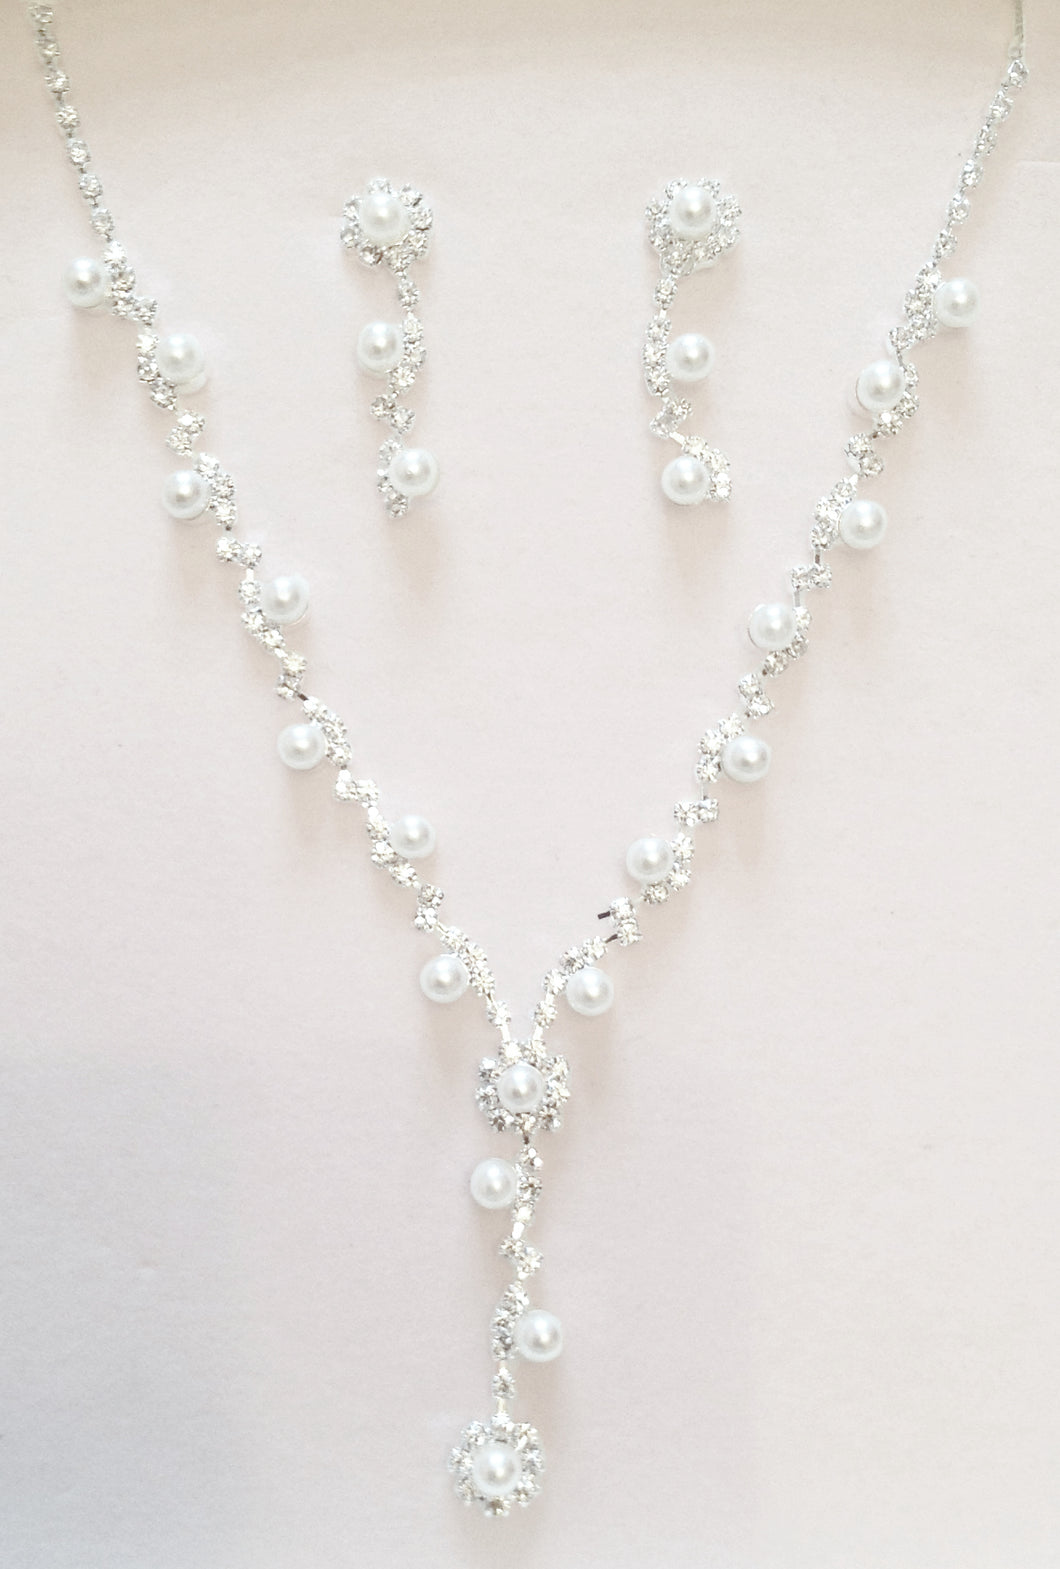 'Magical' Crystal & Pearl Jewellery Set, Feel like a Fairytale Princess with this breathtakingly beautiful jewellery set